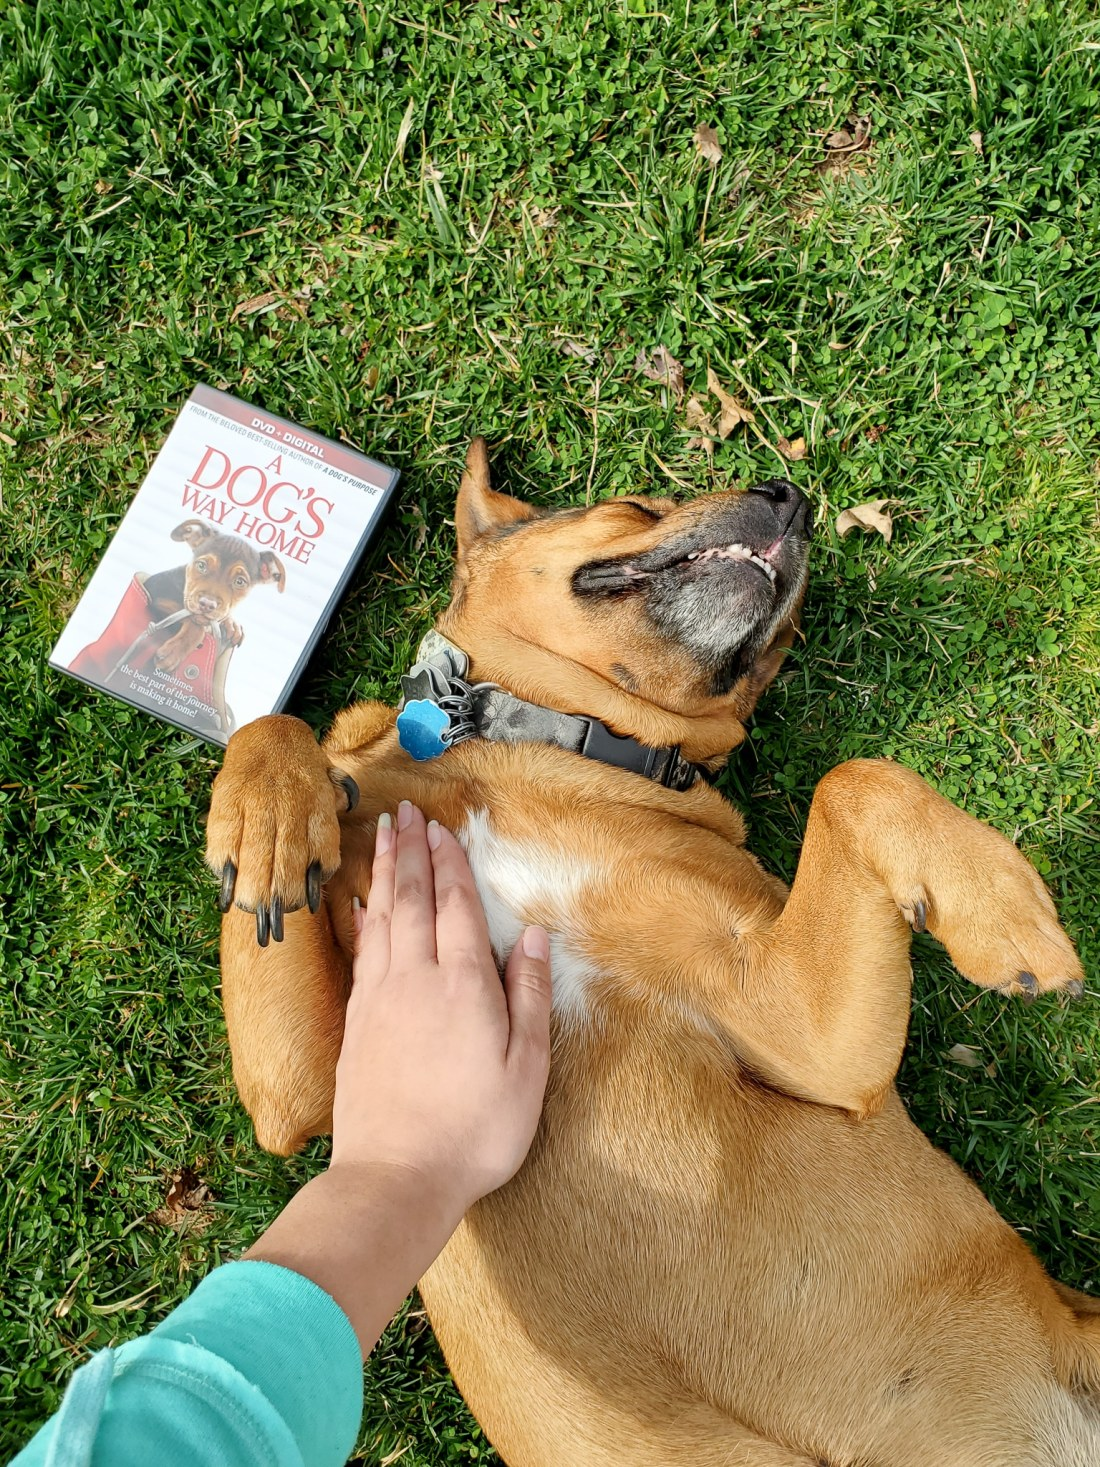 A Dog's Way Home DVD Release Beau. A Dog's Way Home Film is now available on DVD and Digital everywhere. This touching film shares Bella's heartwarming adventure as she embarks on an epic 400-mile journey back home.